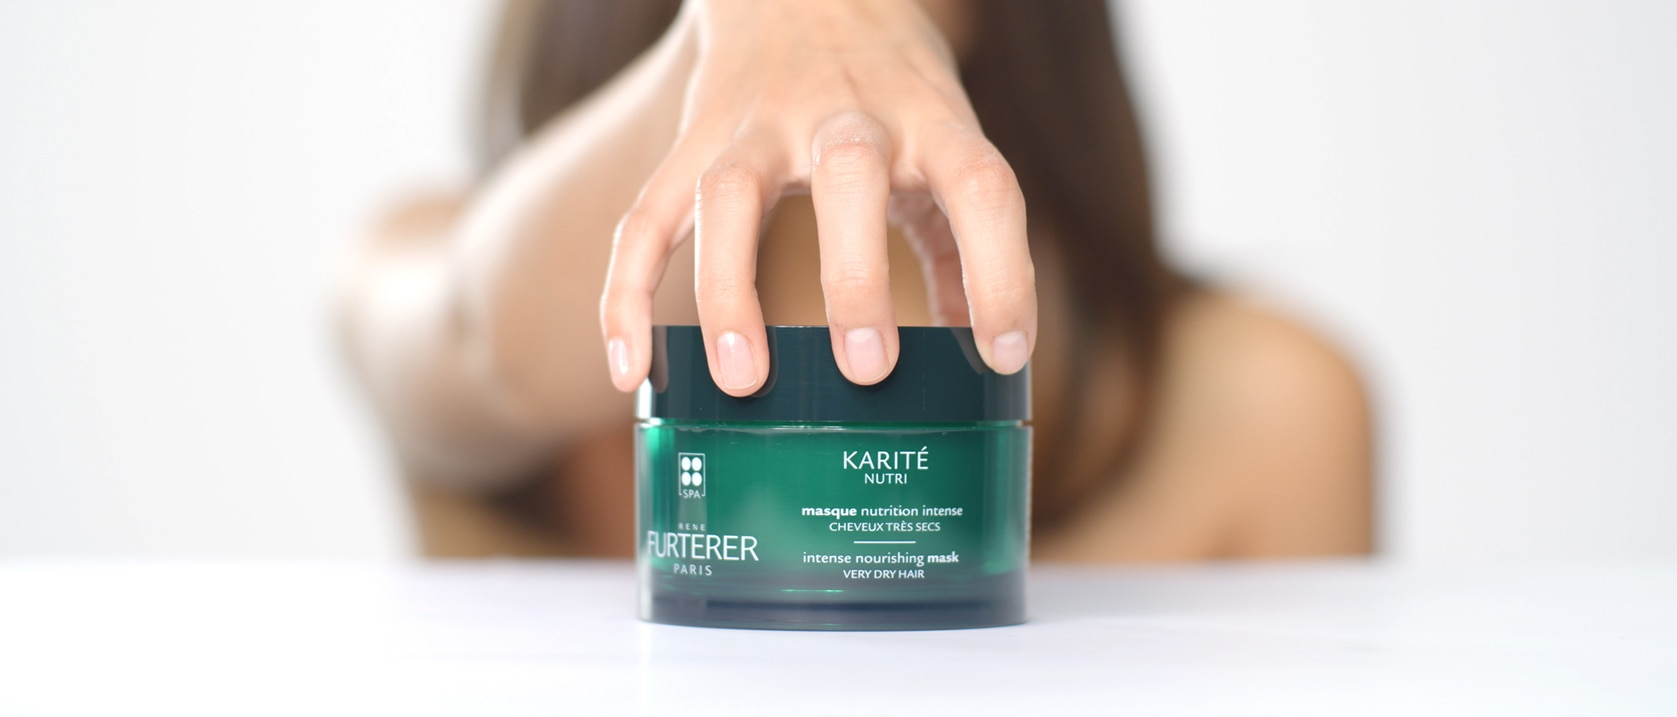 KARITÉ NUTRI masque Nutrition intense pot video application  | René Furterer